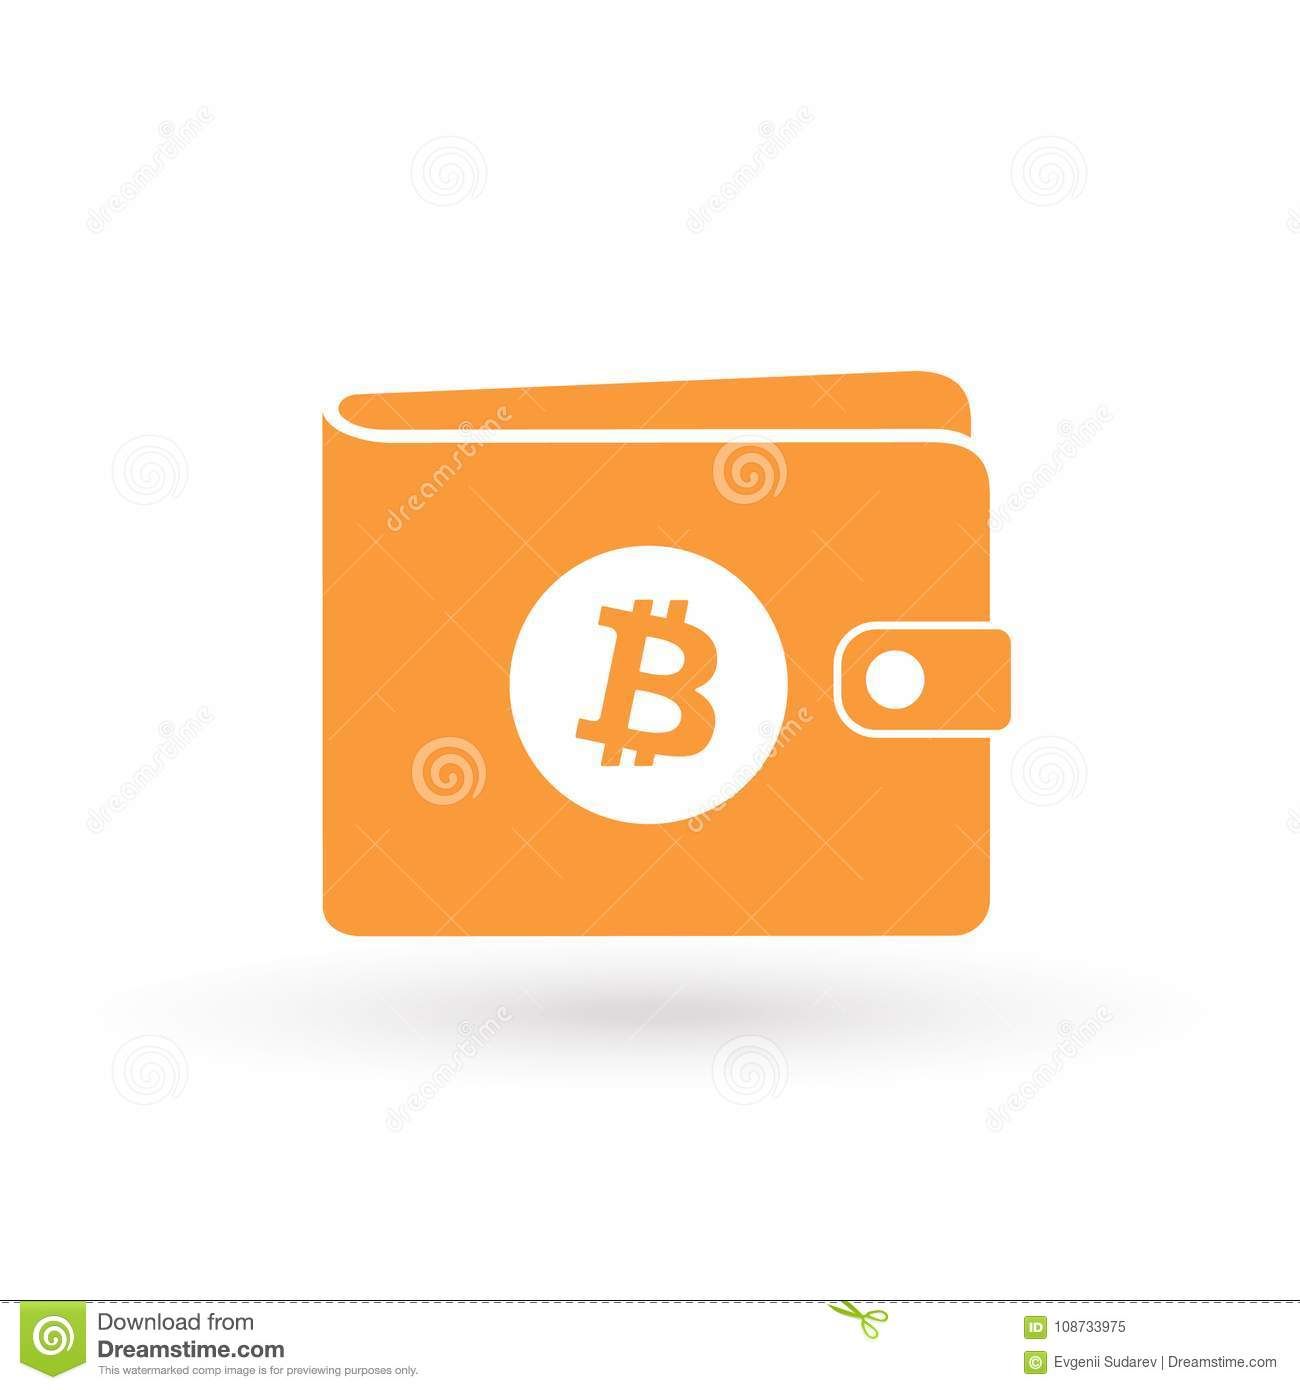 Download Bitcoin Orange Wallet Icon With Cryptocurrency Blockchain Logo Stock Vector